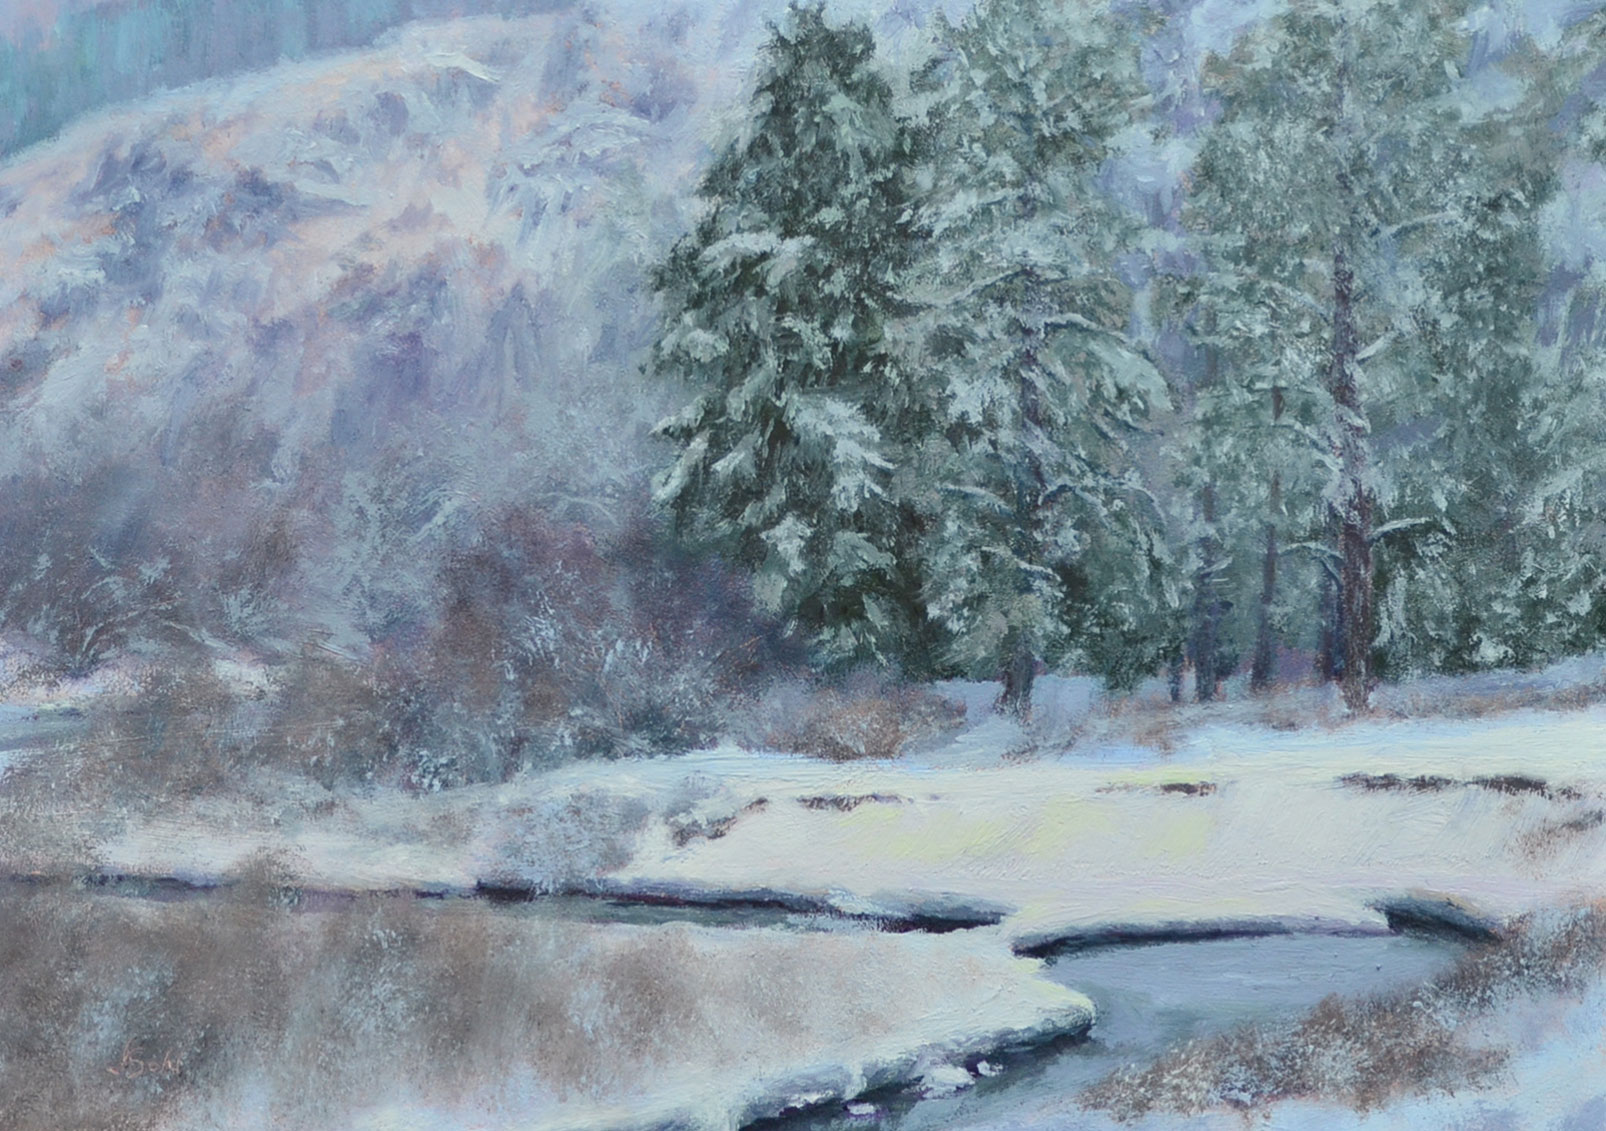 Silver City Snow  5x7 oil